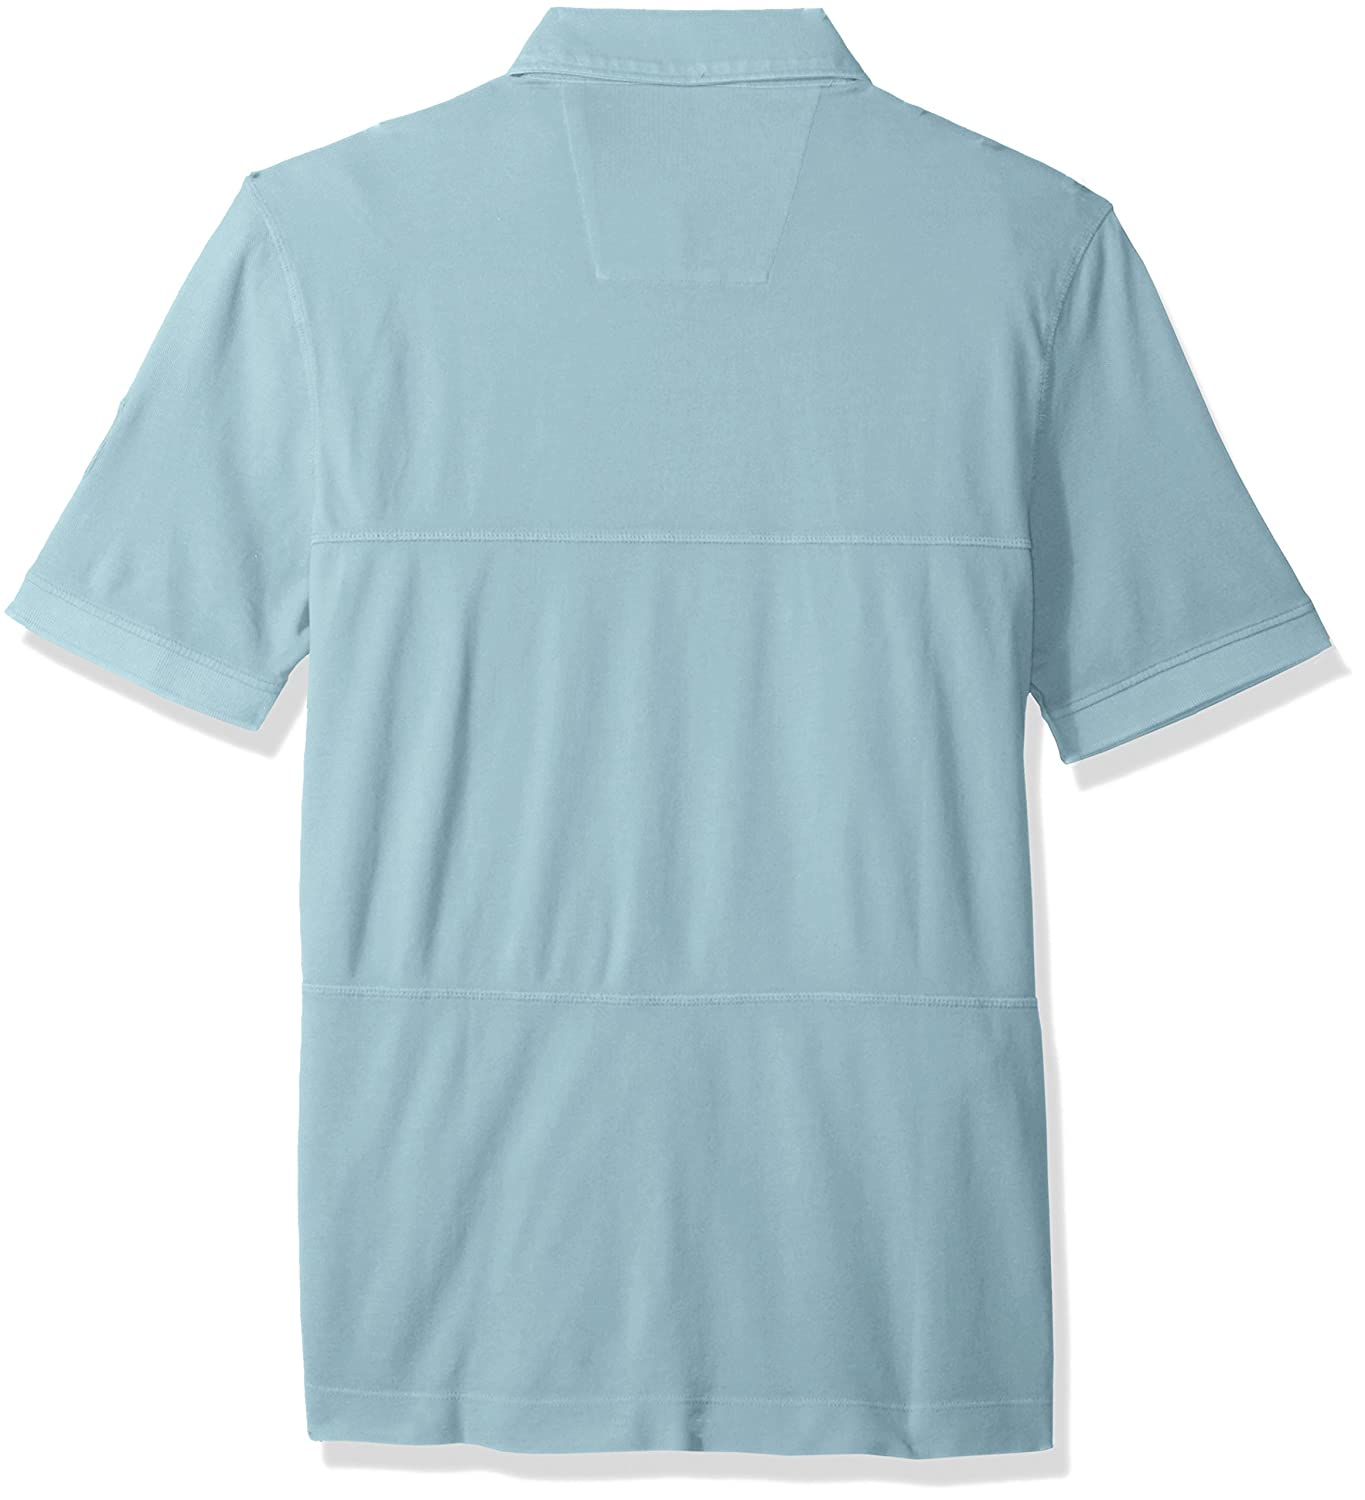 Nautica Classic Fit Short Sleeve Polo Shirt with Stitching Detail